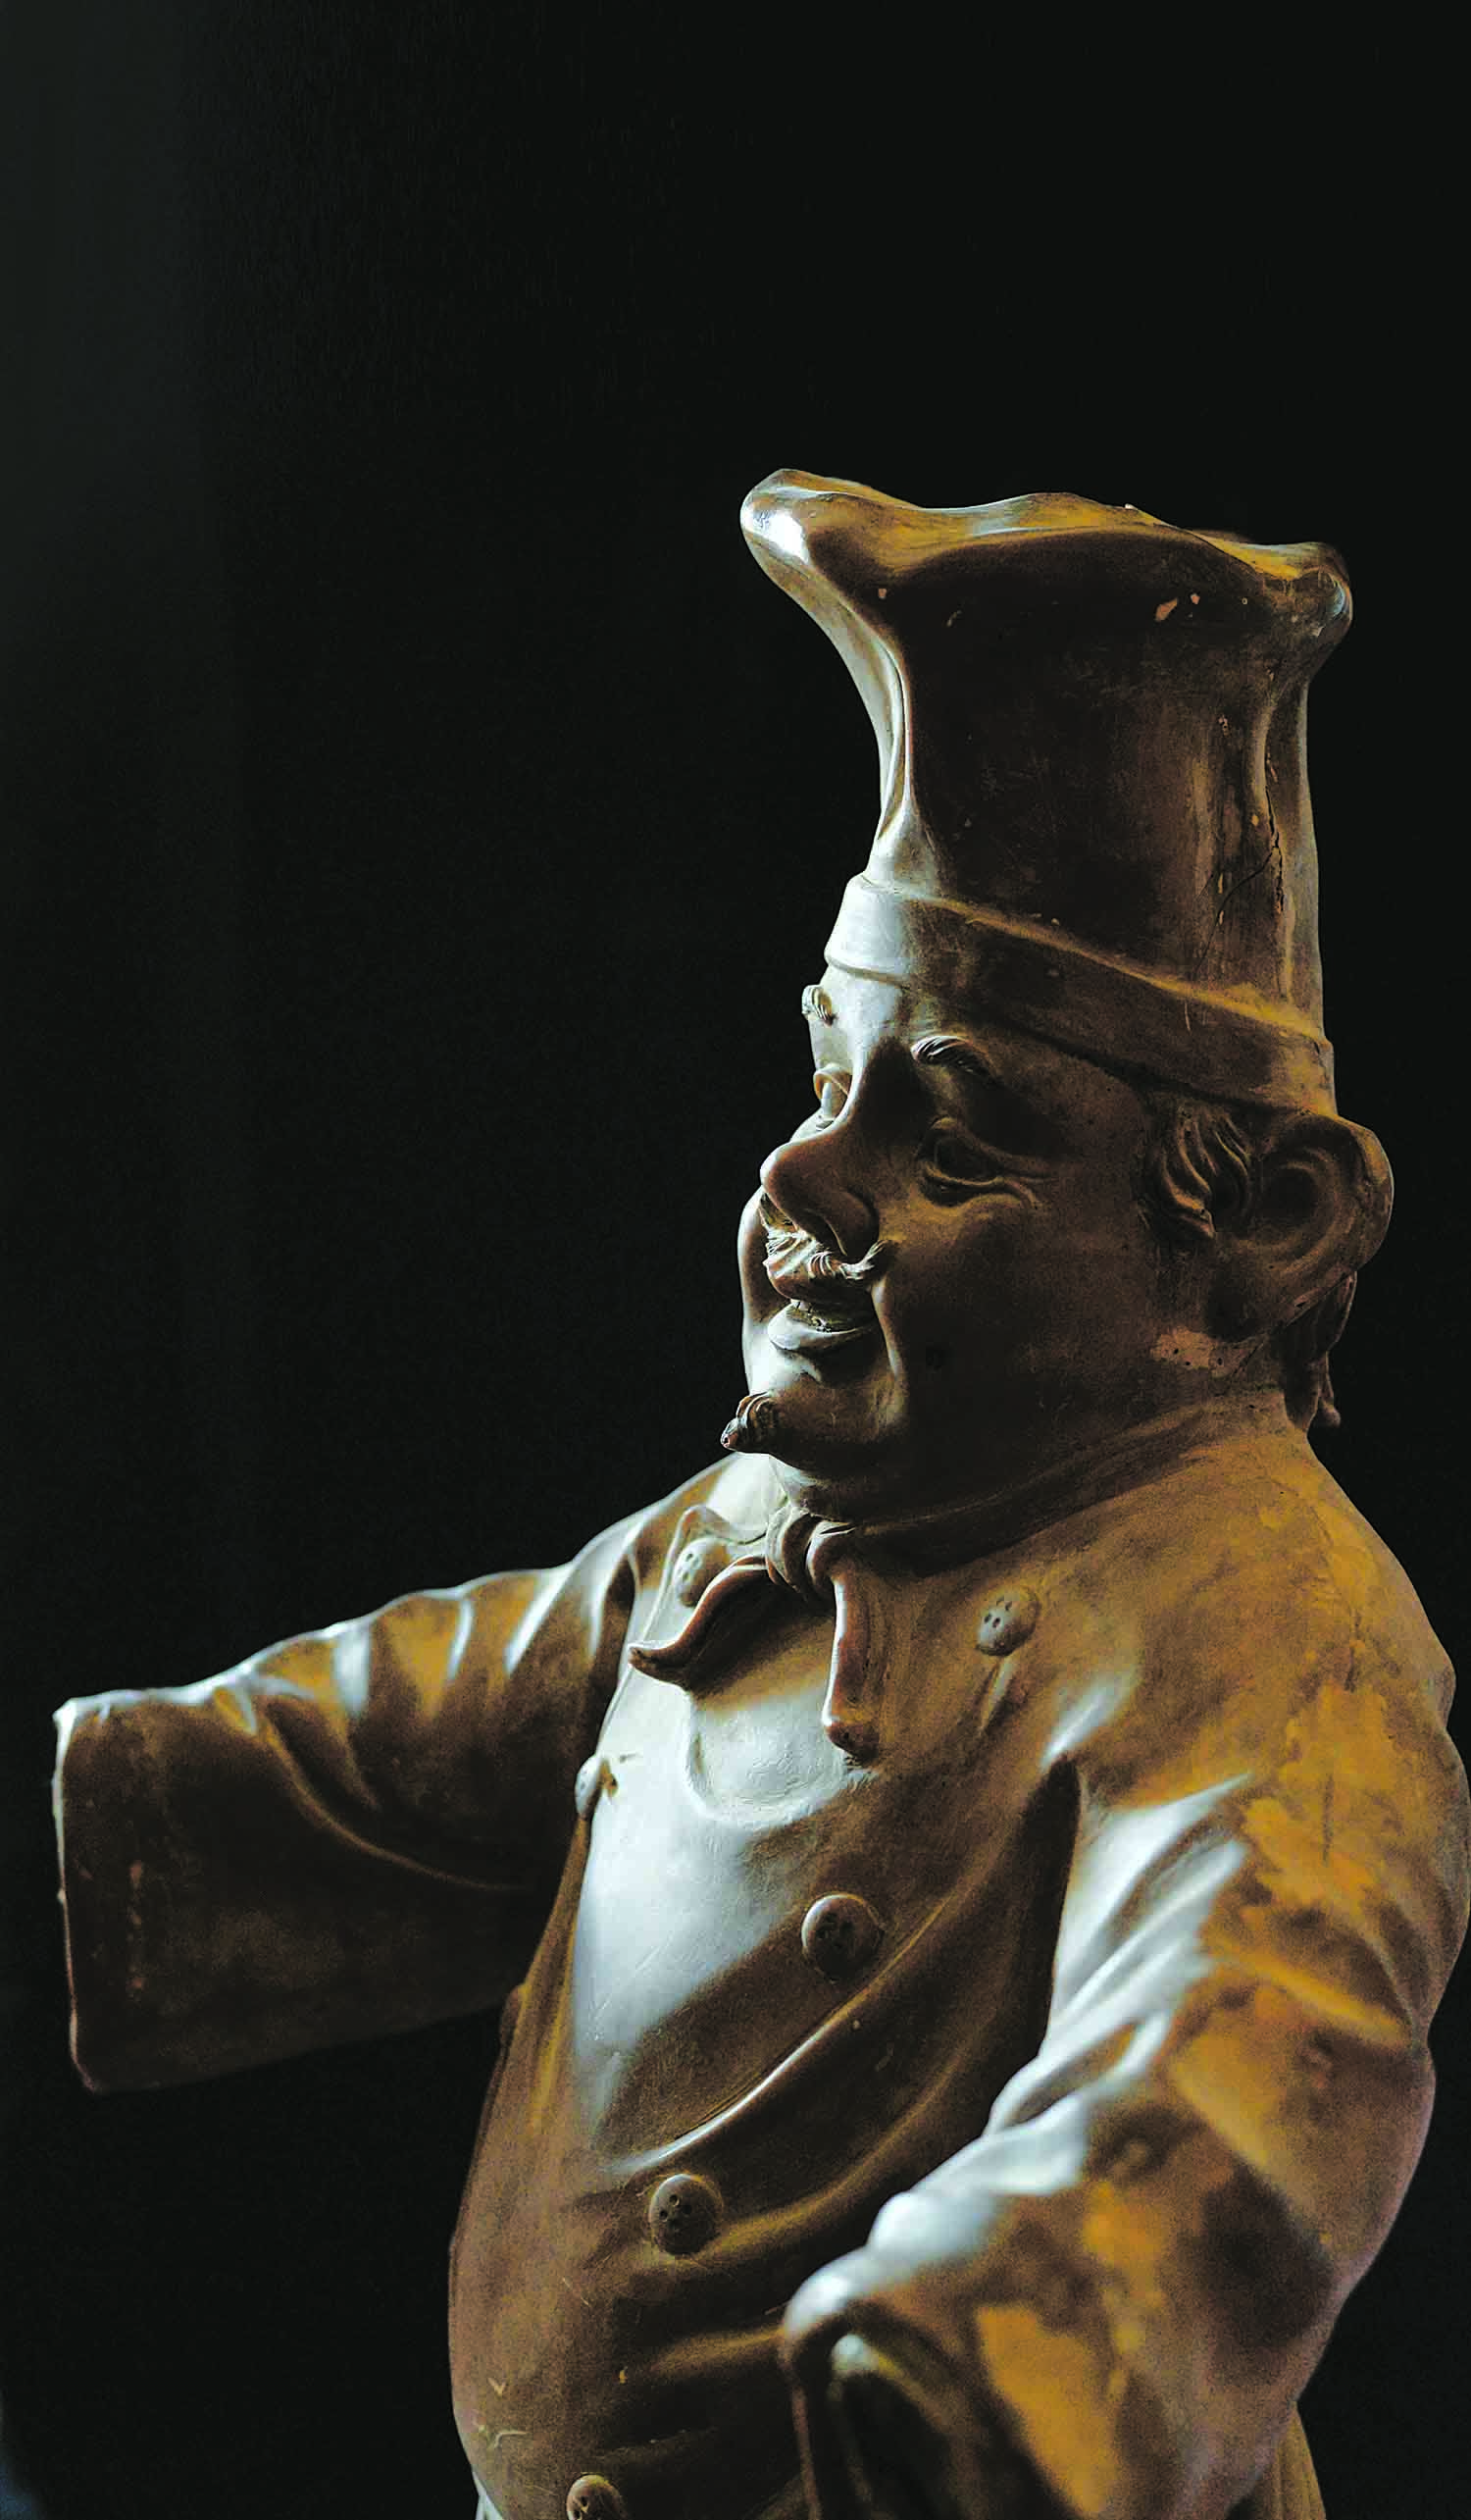 This effigy of a rotund chef once greeted the patrons of Mexicano, a continental restaurant located where Zainab Market is situated today. Mexicano was very popular in the sixties and the 'chef' was accompanied by a 'butler' who welcomed visitors as he held a domed-dish upon a tray, with a certain panache. He rather resembled Cadbury, Richie Rich's butler. Mexicano closed down after several years. Like Mexicano, many of the restaurants people remember fondly from that era no longer exist. (Photo: Arif Mahmood/ Dawn White Star)